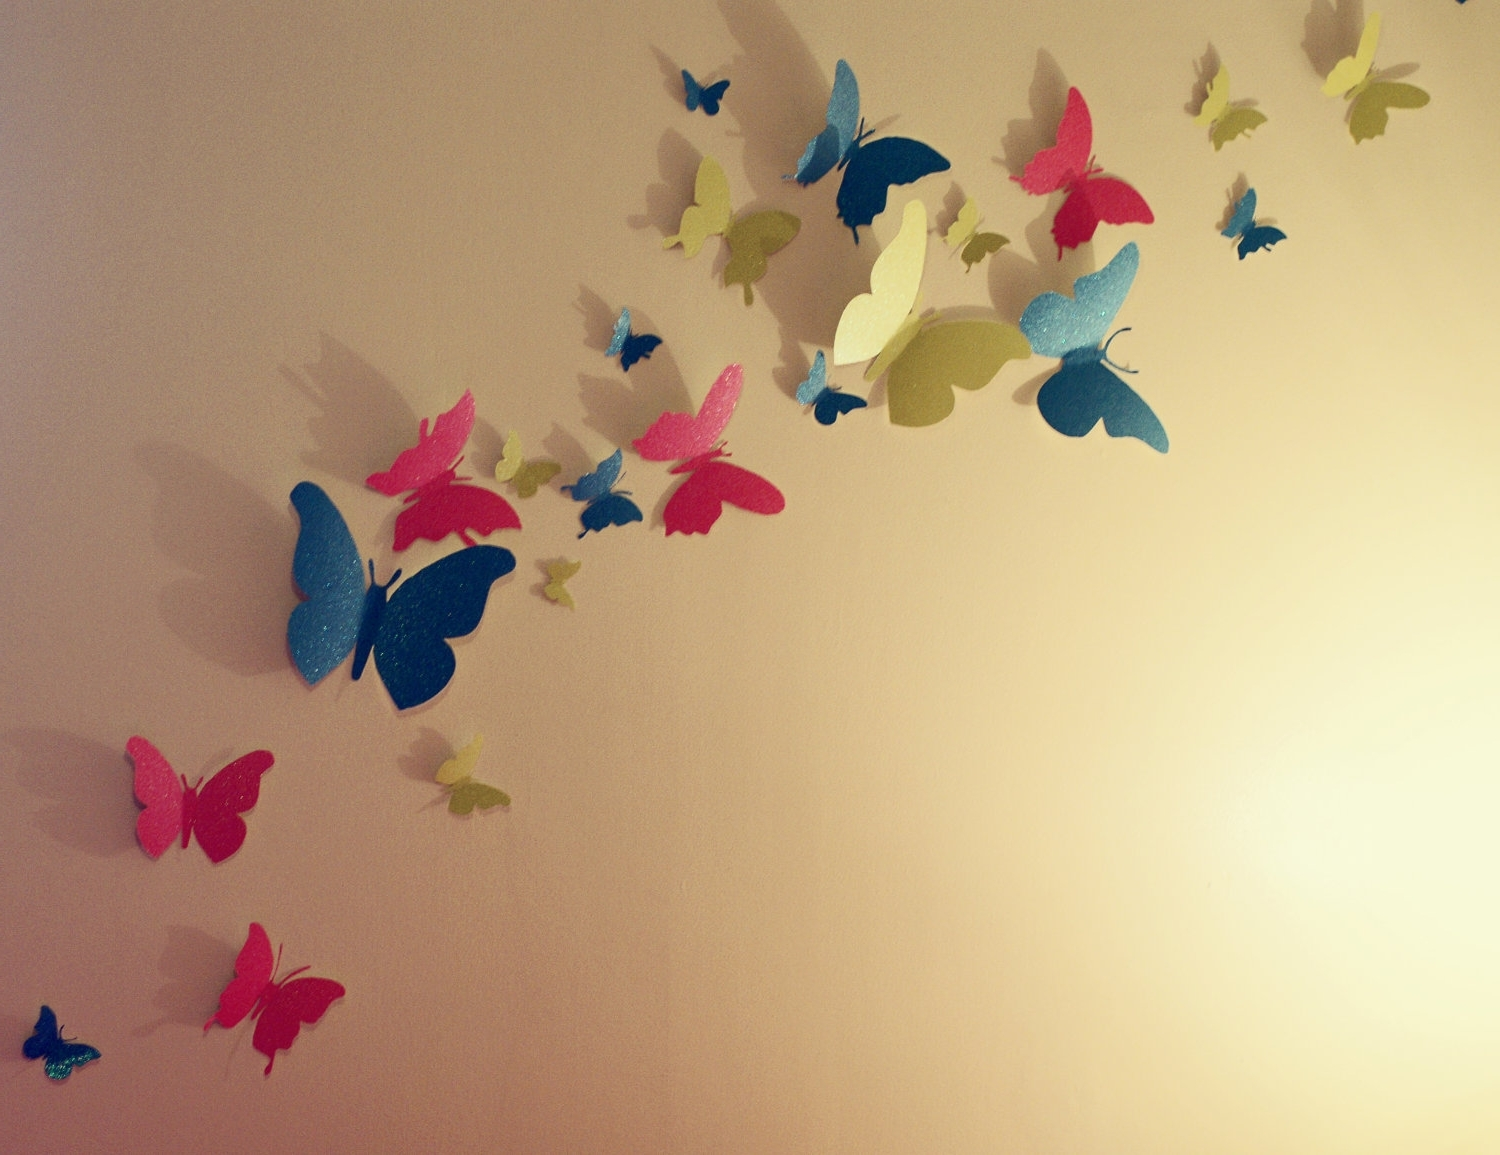 Photo Gallery of Butterflies 3D Wall Art (Showing 4 of 15 Photos)